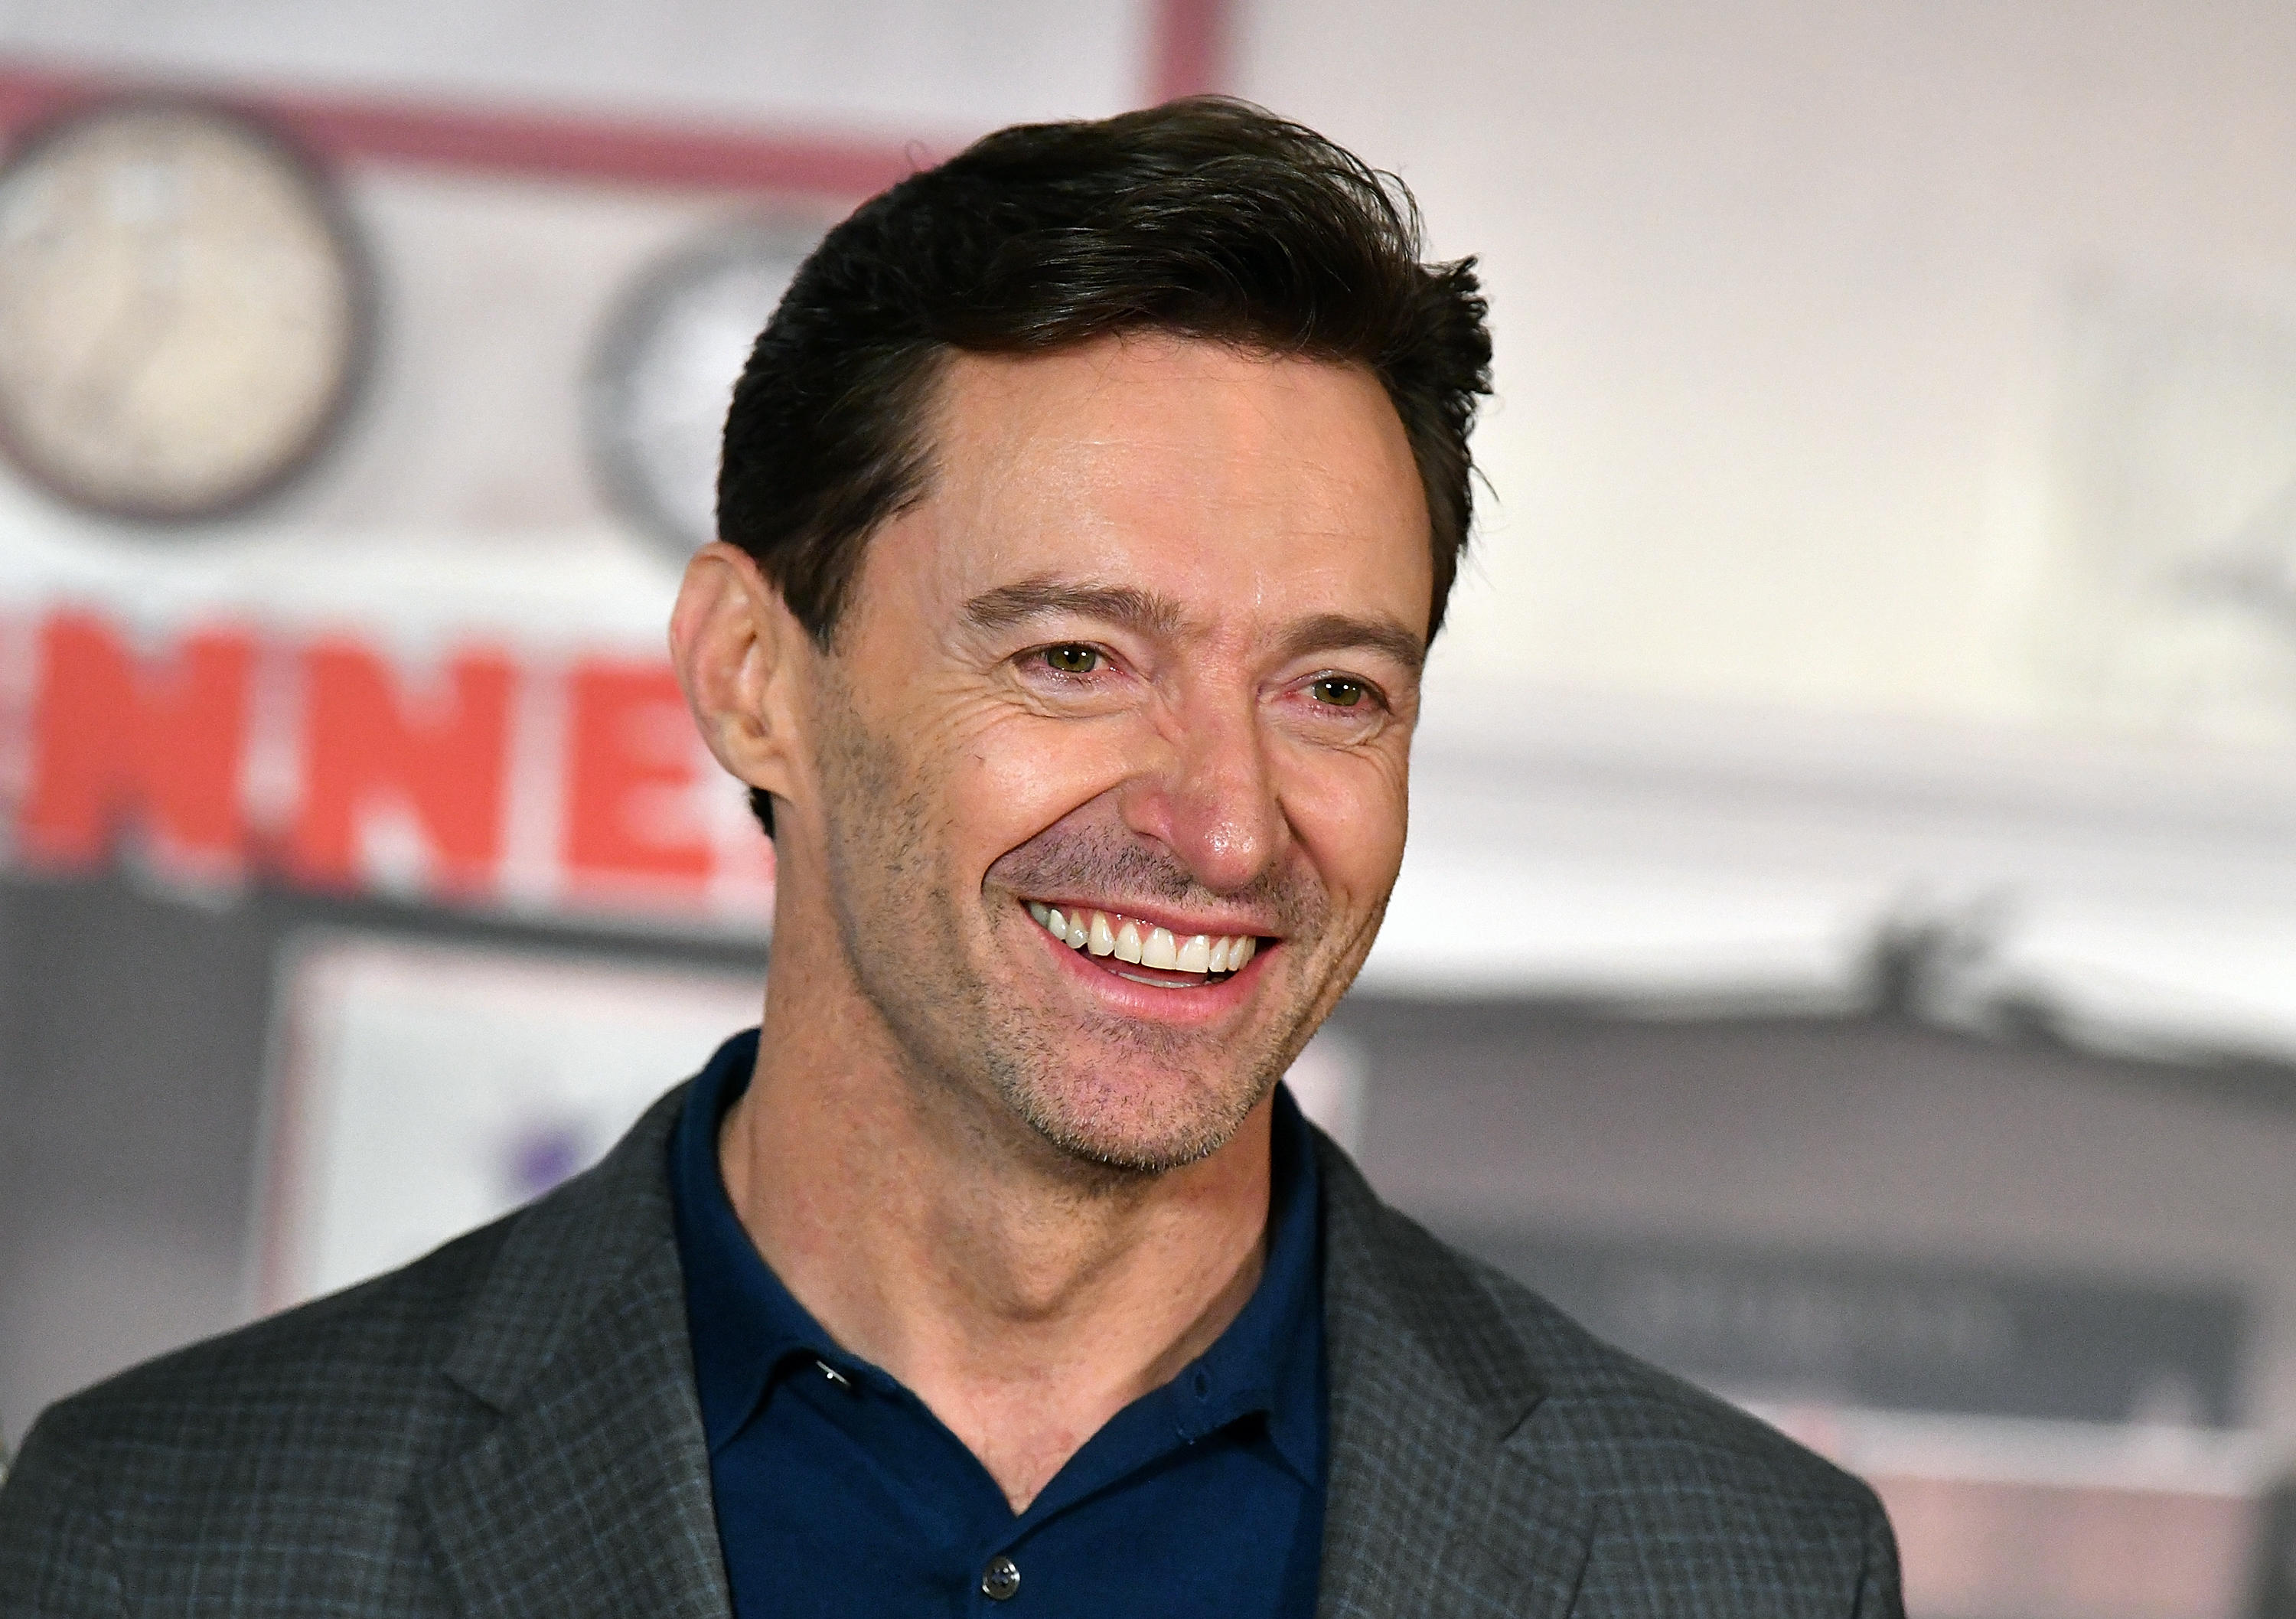 Hugh Jackman announces world tour - CBS News